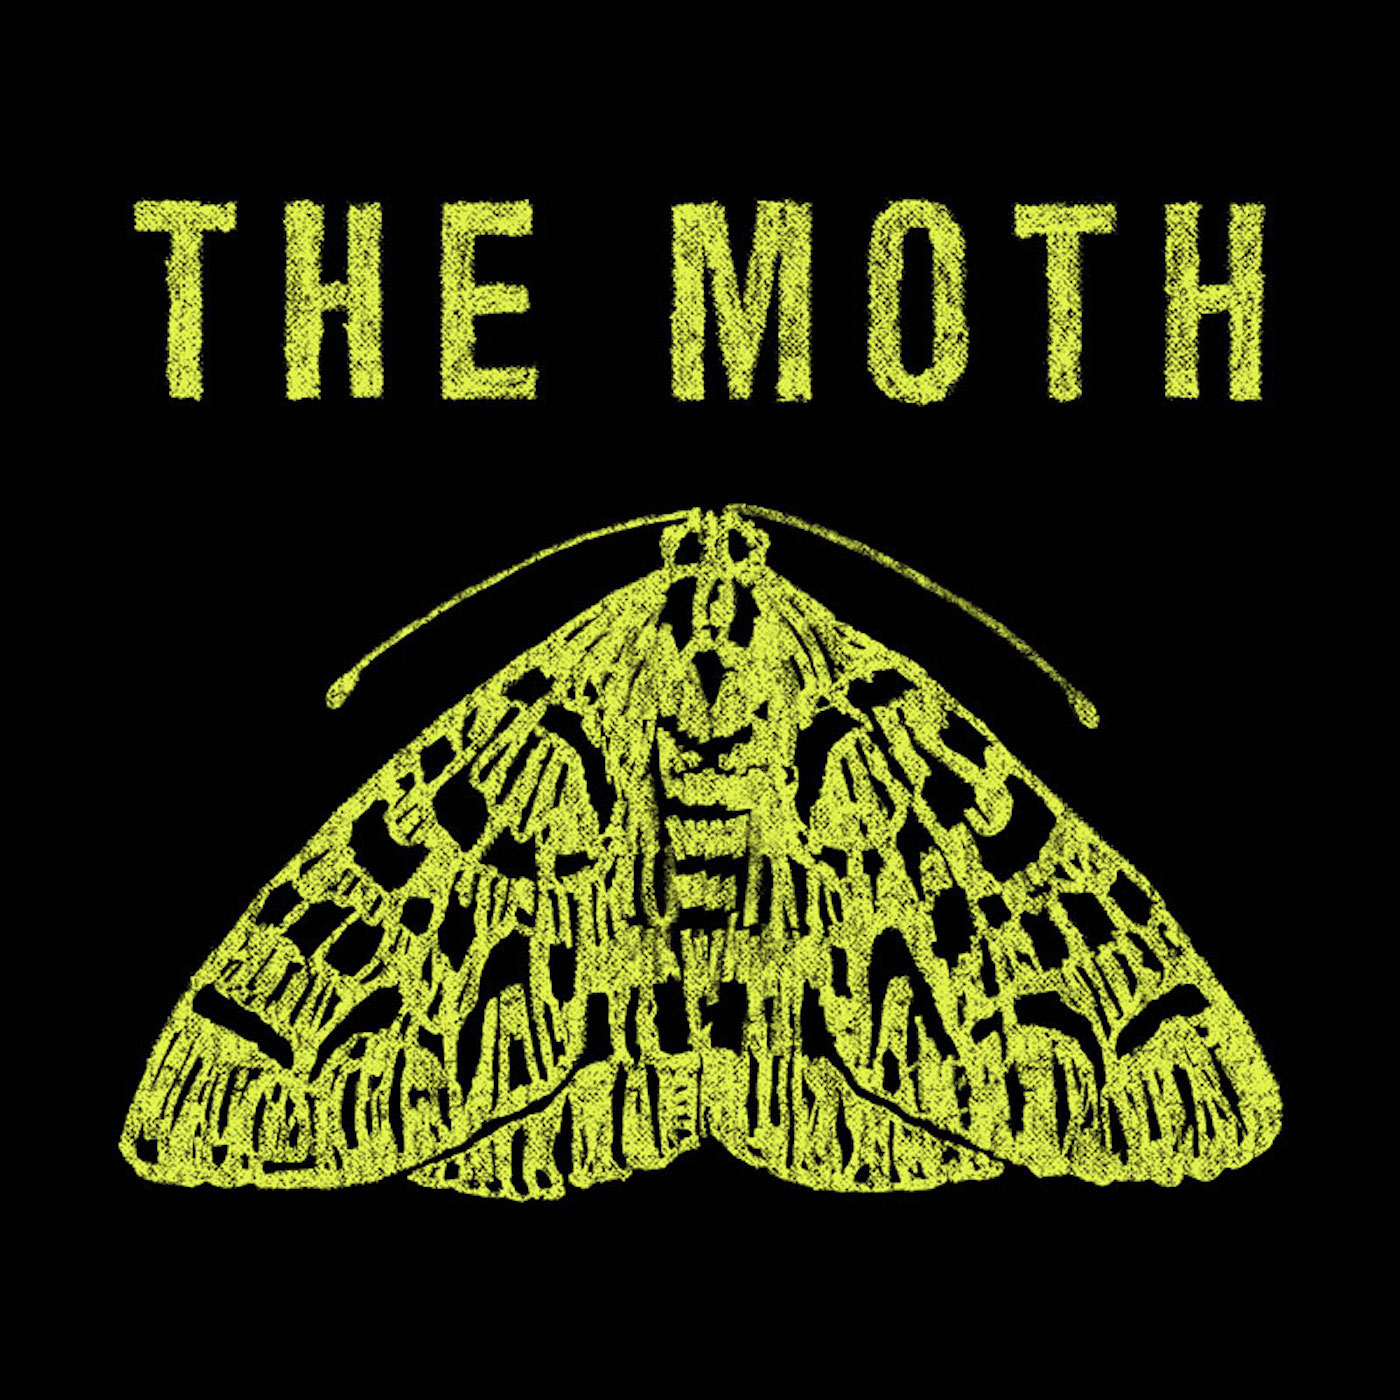 The Moth Radio Hour: Mets, McDonalds, and a White House Secret